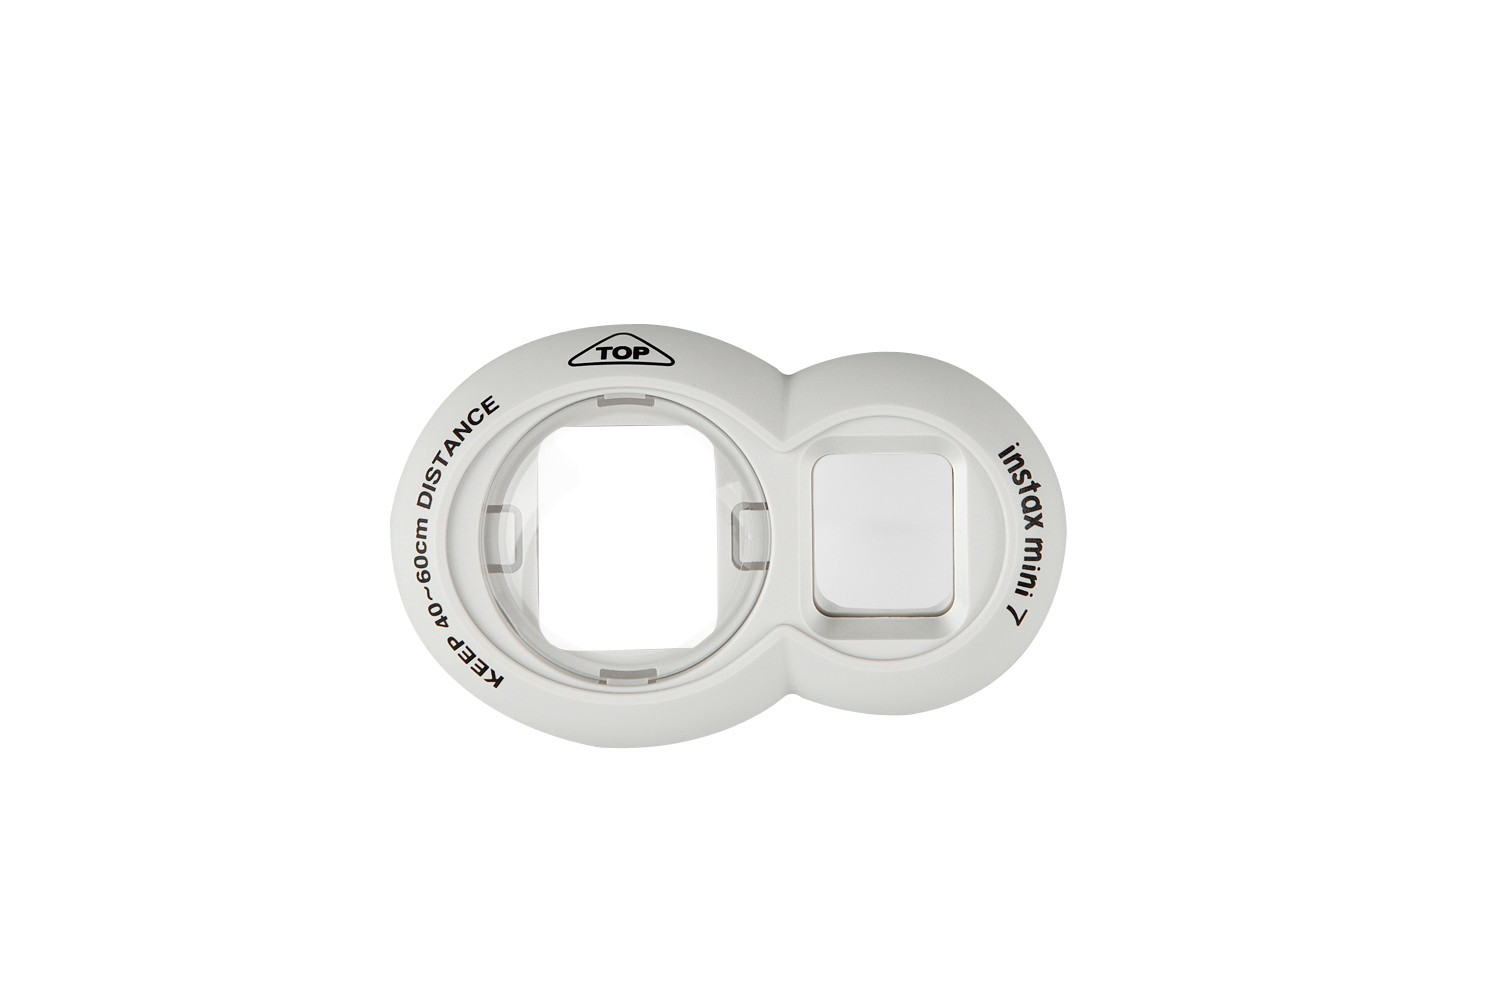 Fuji Close Up Lens Attachment